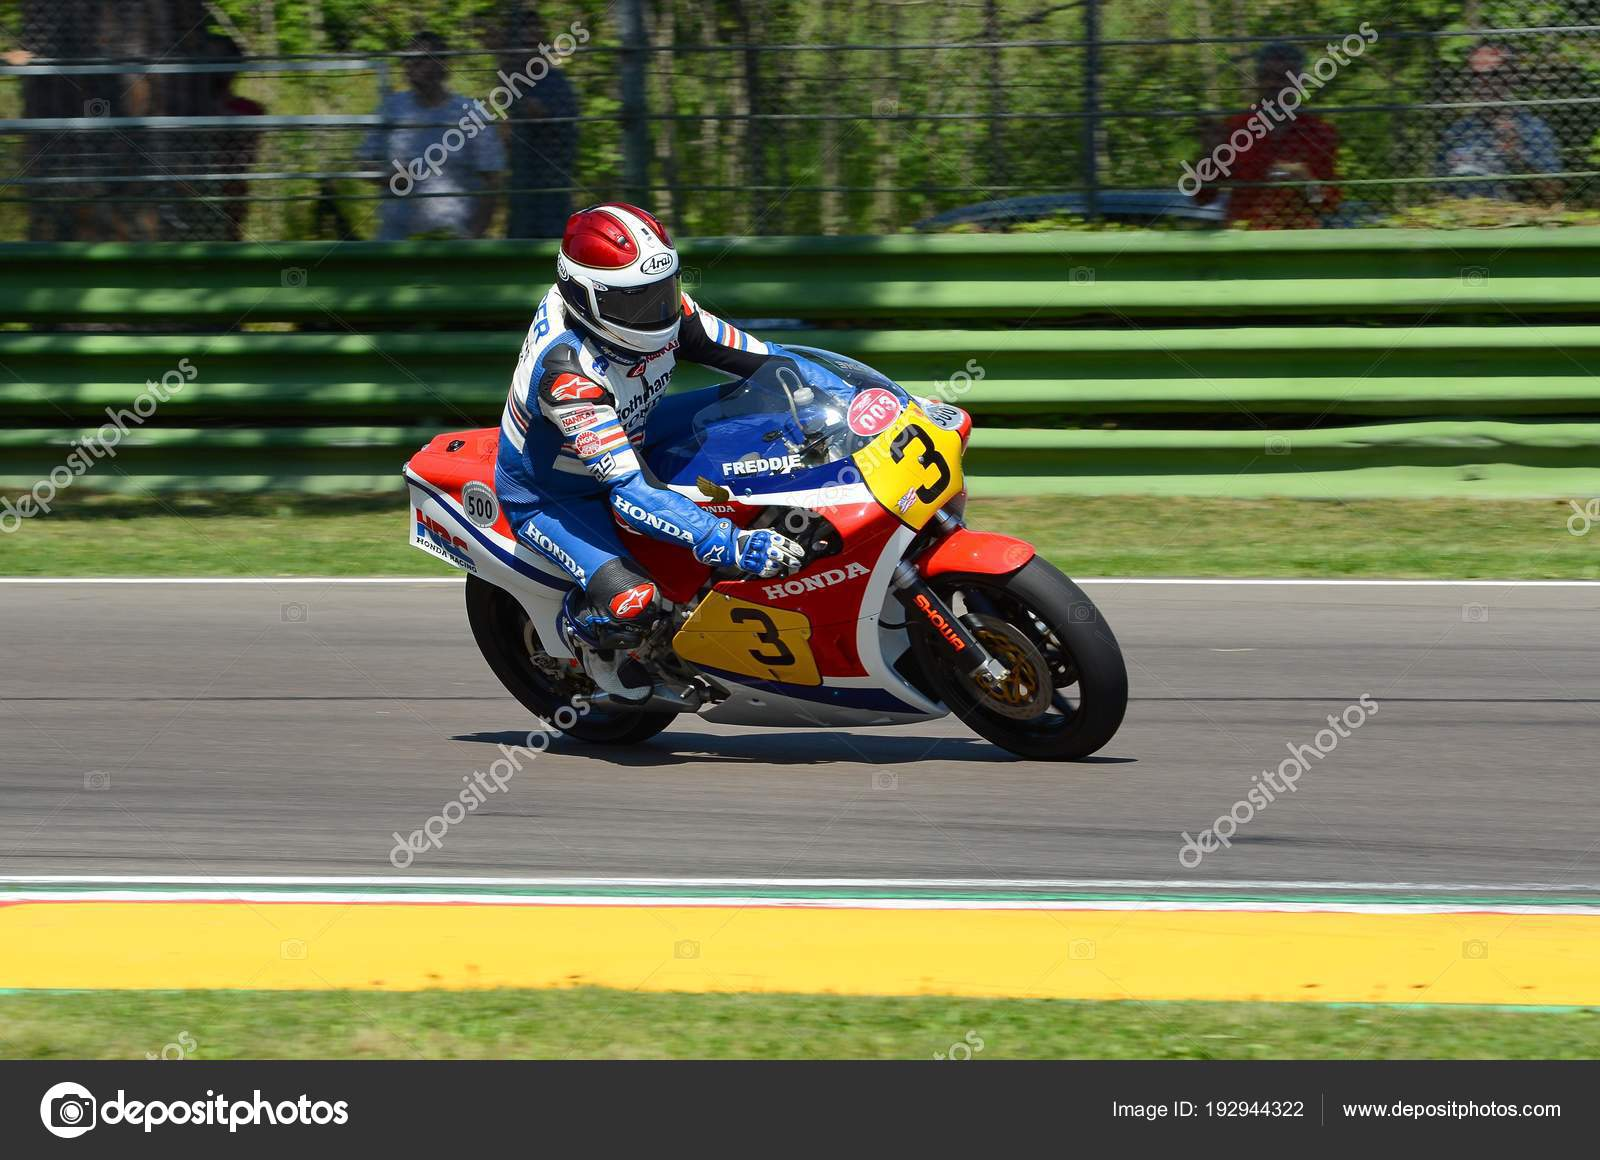 april 2018 freddie spencer